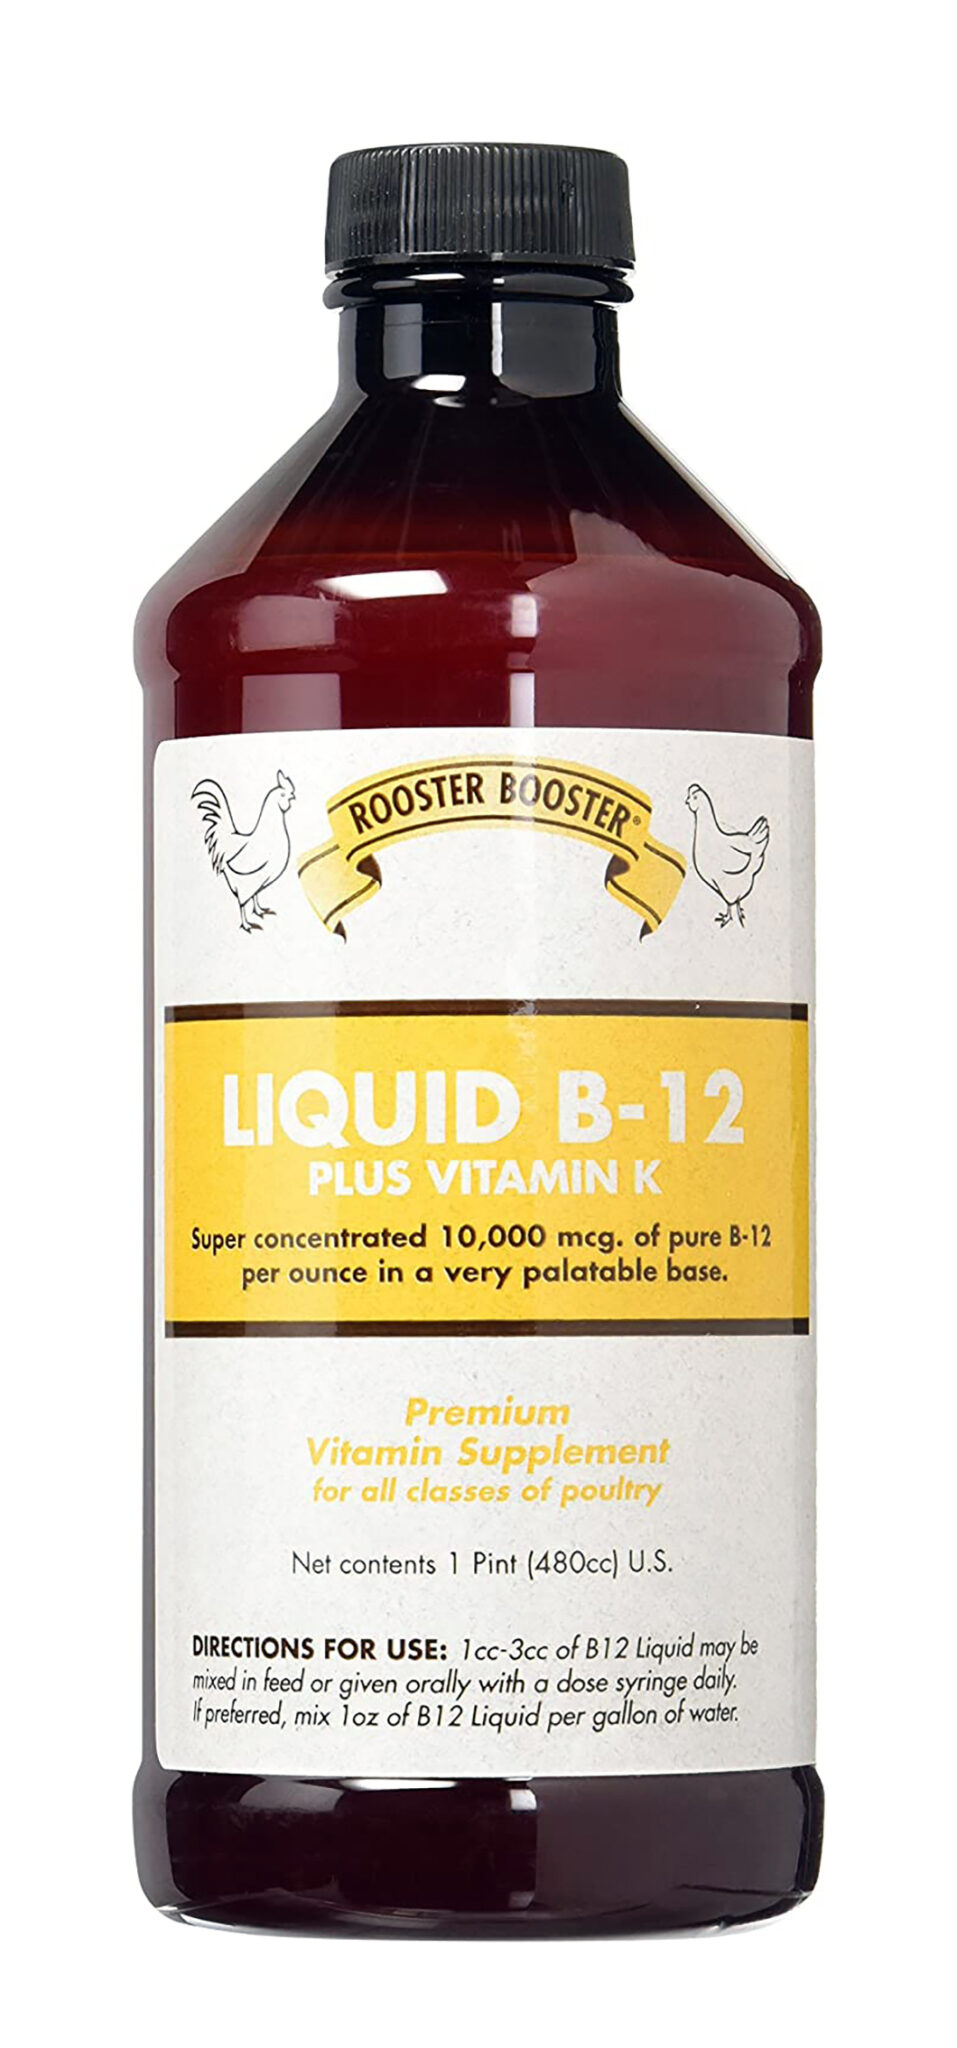 b-12 for chickens